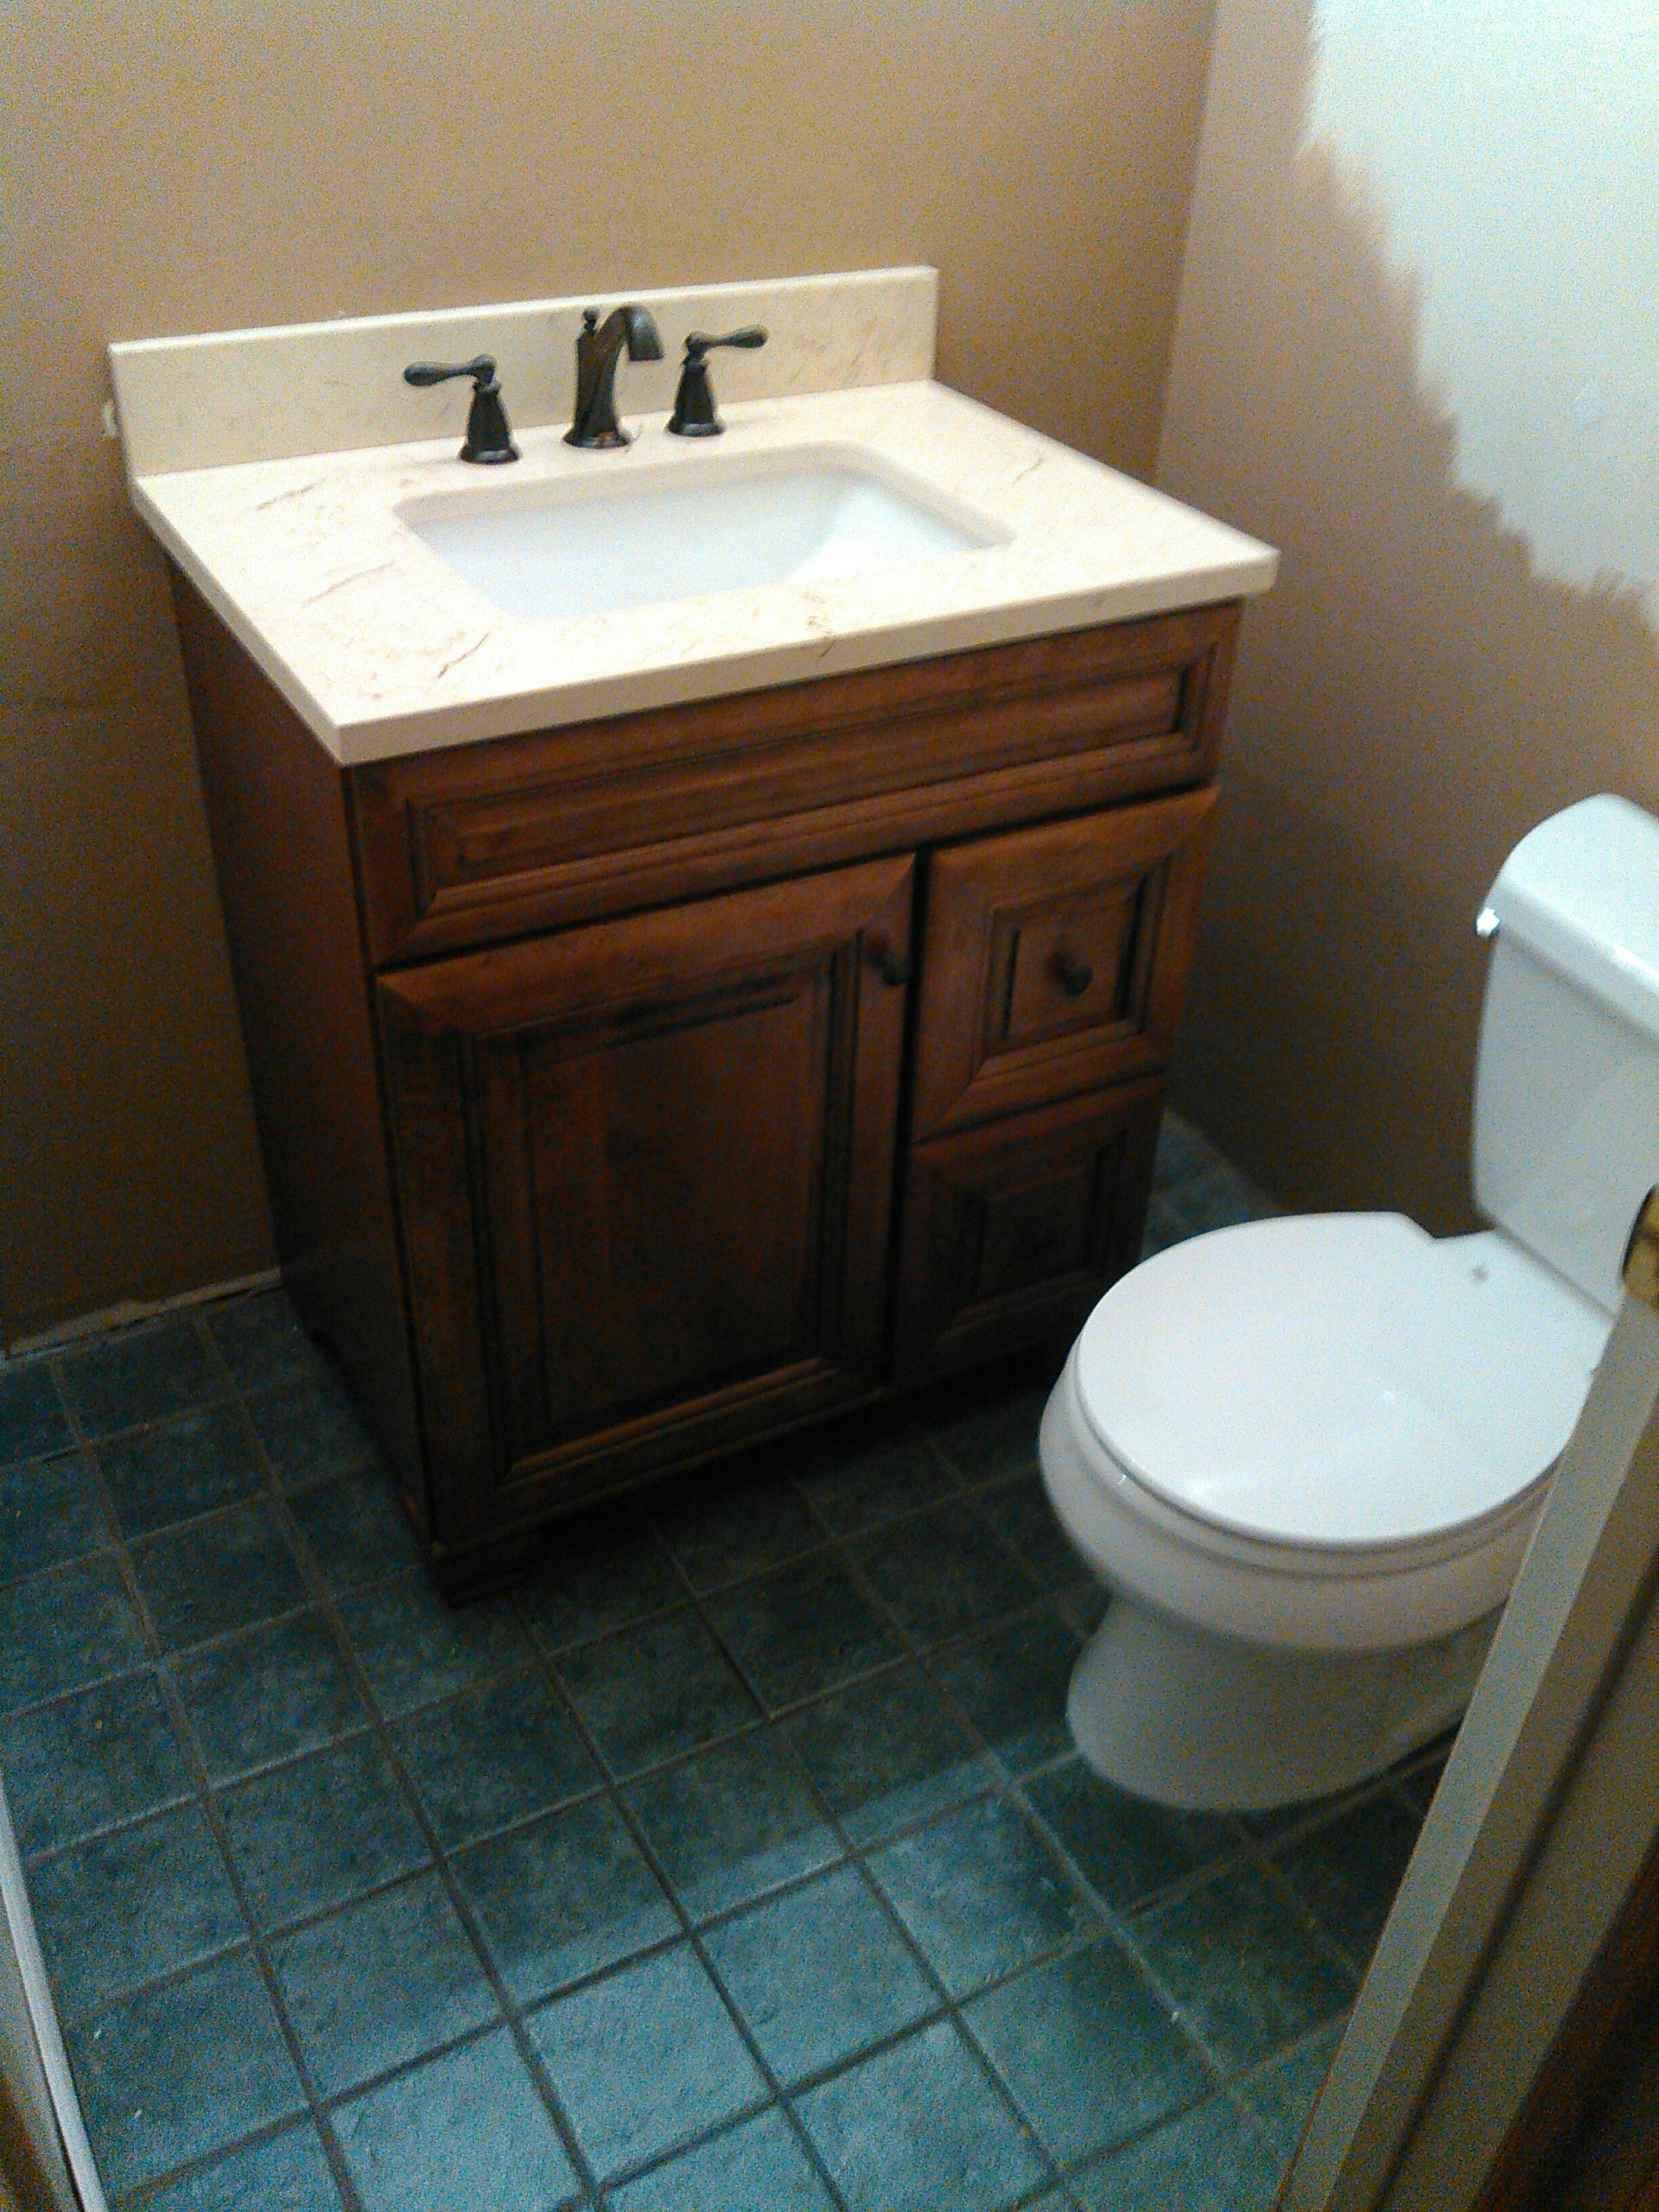 Chatsworth, CA - Install owners toilet and Pullman cabinet with sink/faucet